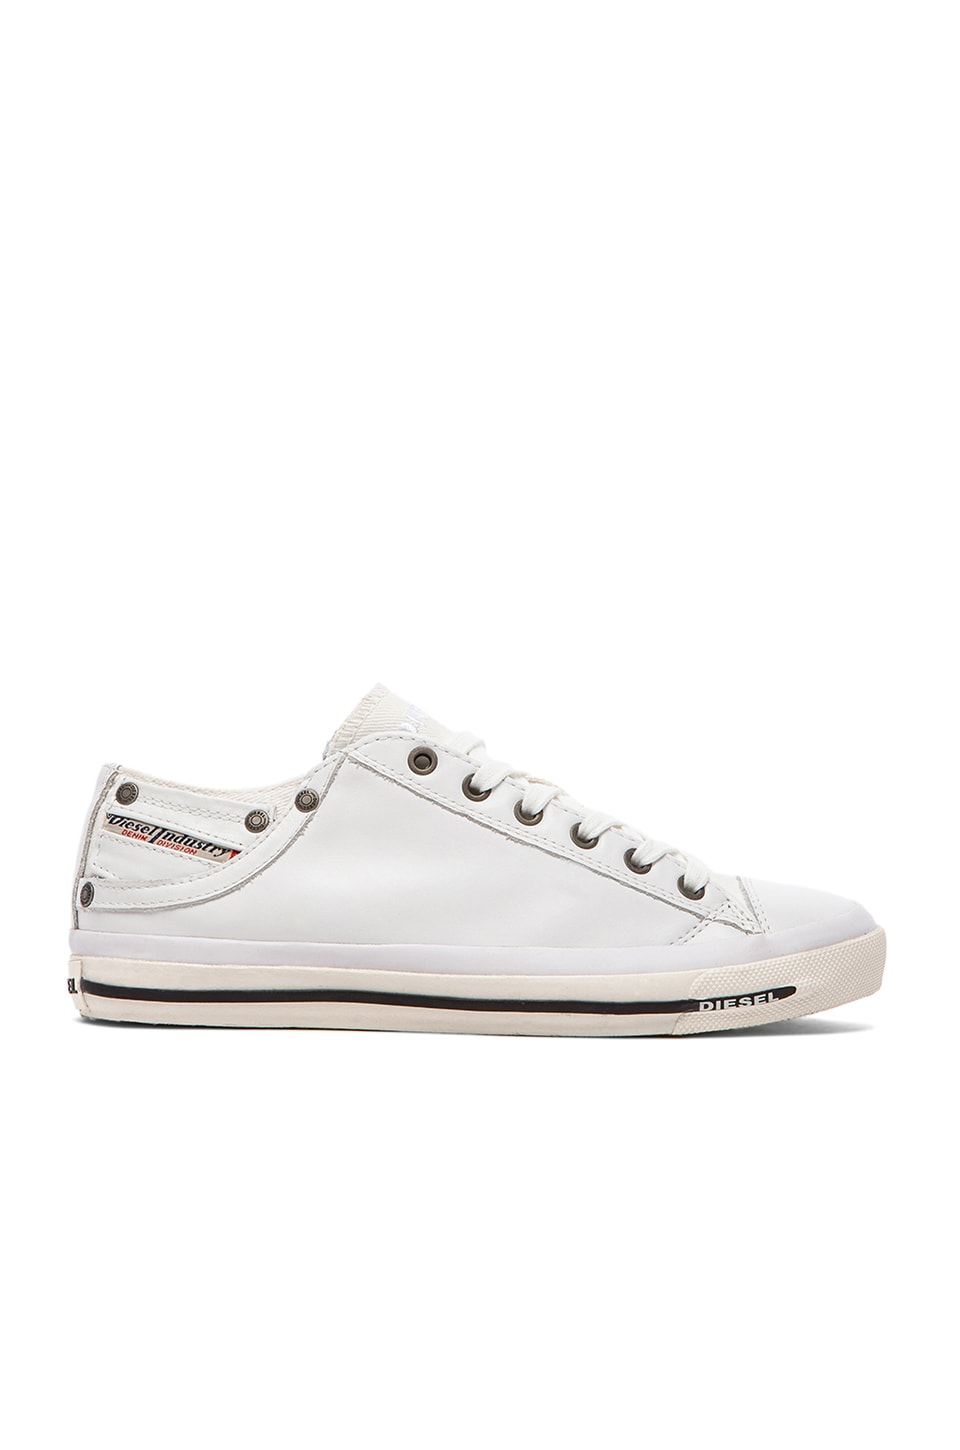 Diesel Magnete Exposure Low I Leather in White